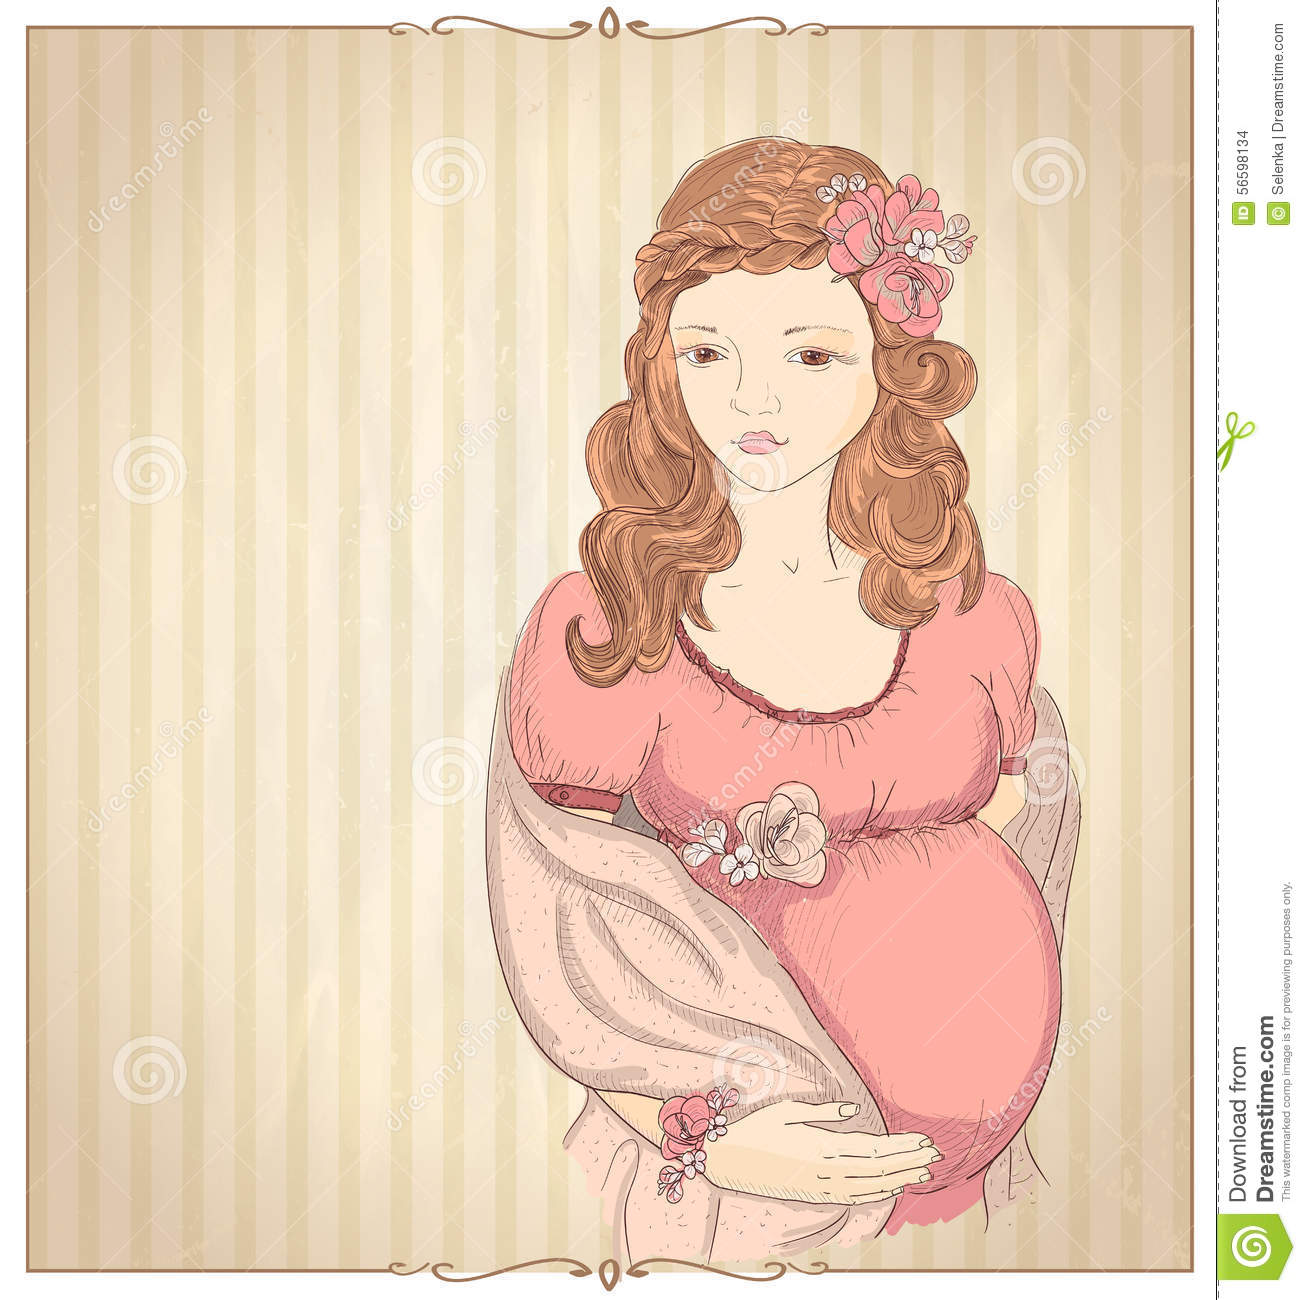 Vintage Style Graphic Portrait Of A Pregnant Woman Stock ...